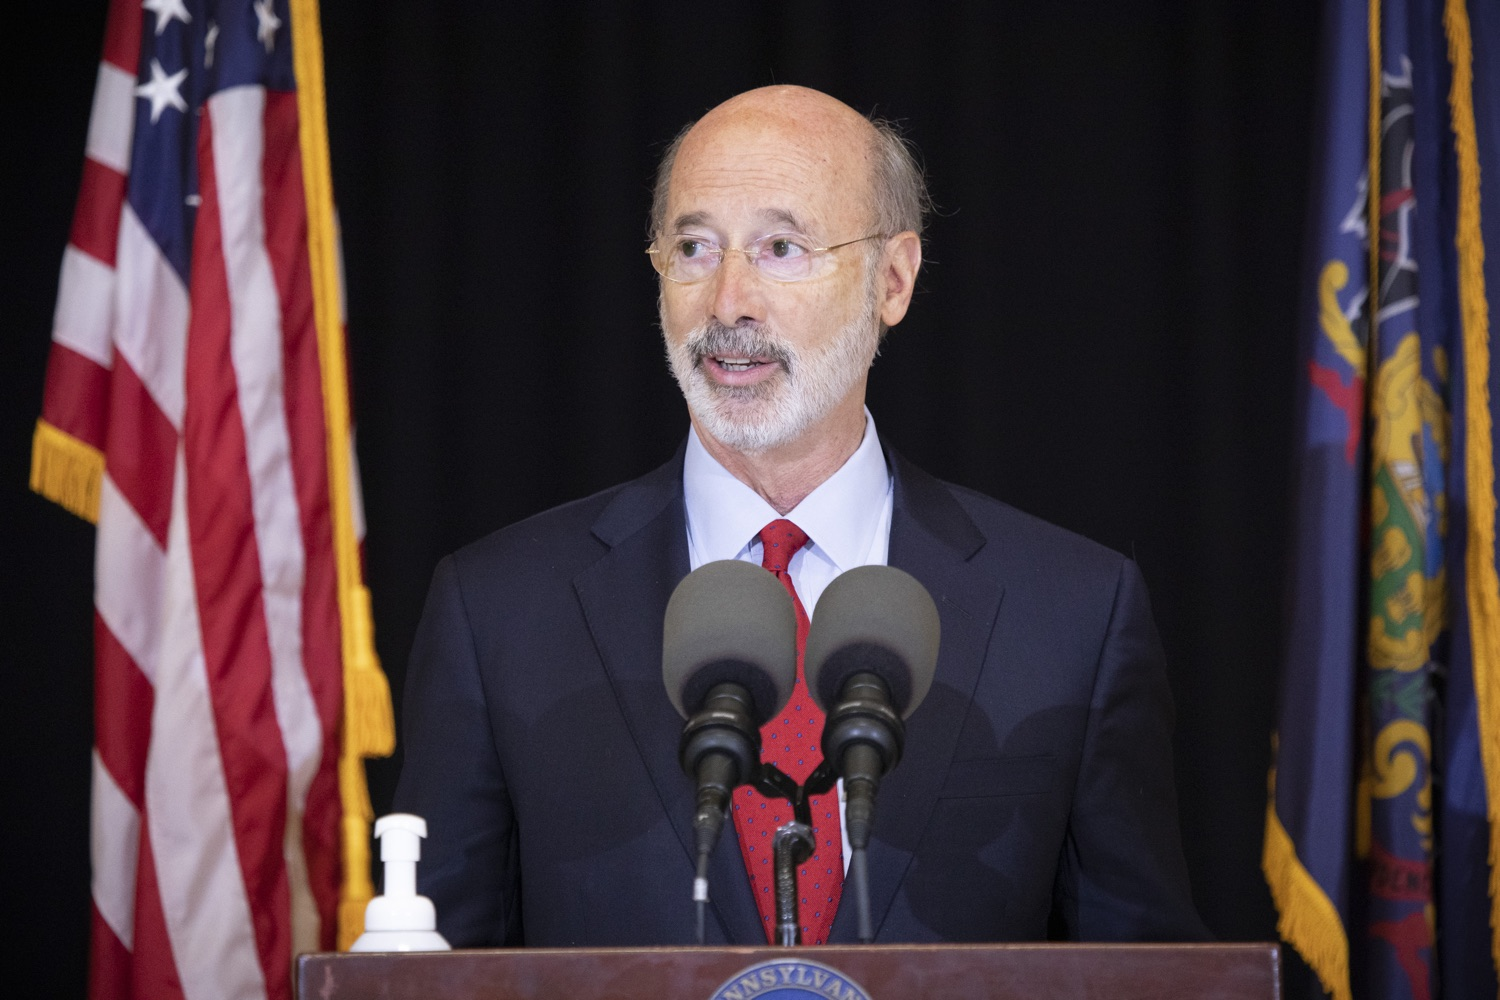 "<a href=""https://filesource.wostreaming.net/commonwealthofpa/photo/18310_gov_adult_use_cannabis_dz_002.jpg"" target=""_blank"">⇣ Download Photo<br></a>Governor Tom Wolf speaks to the press.Governor Tom Wolf visited The Mountain Center in Tobyhanna, Monroe County today to talk about the economic growth potential and restorative justice benefits of legalizing adult-use cannabis, something the state General Assembly has not yet done despite multiple requests from the governor and Lieutenant Governor John Fetterman to take up legislation this fall.  Tobyhanna, PA  October 13, 2020"